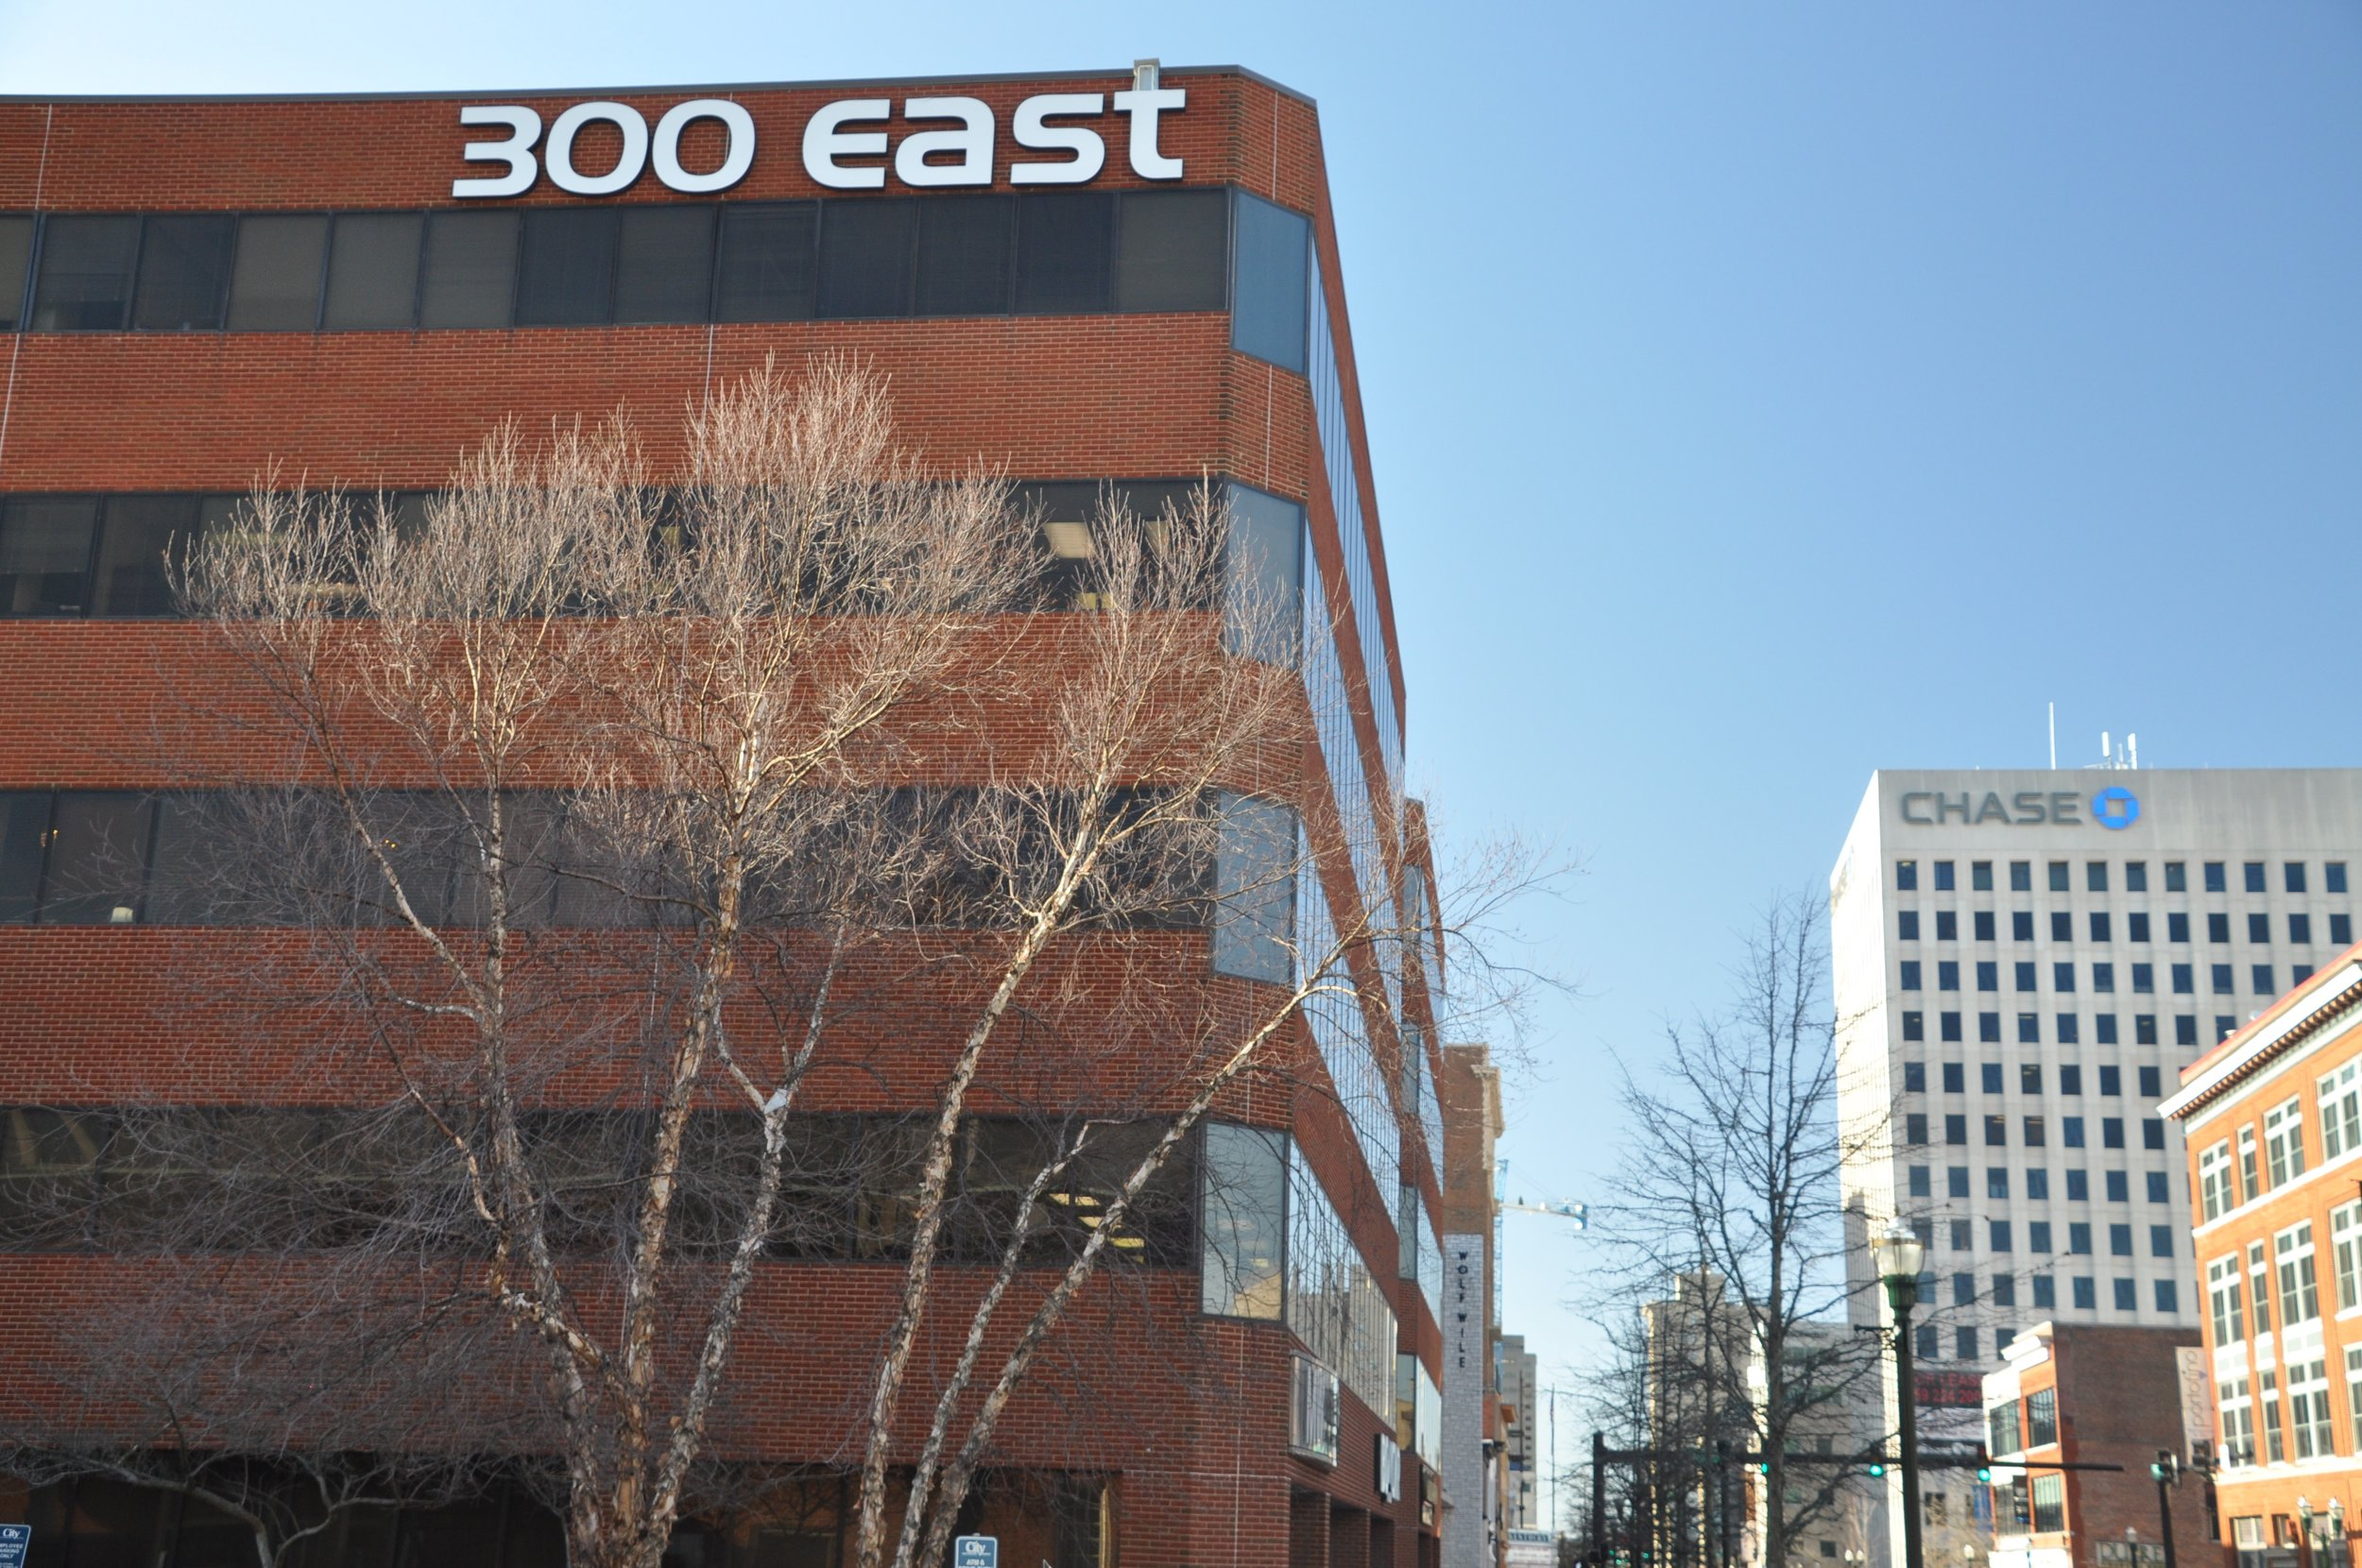 300 East Main Street in Lexington, KY.  Location of Devine & Dominick, PLLC.